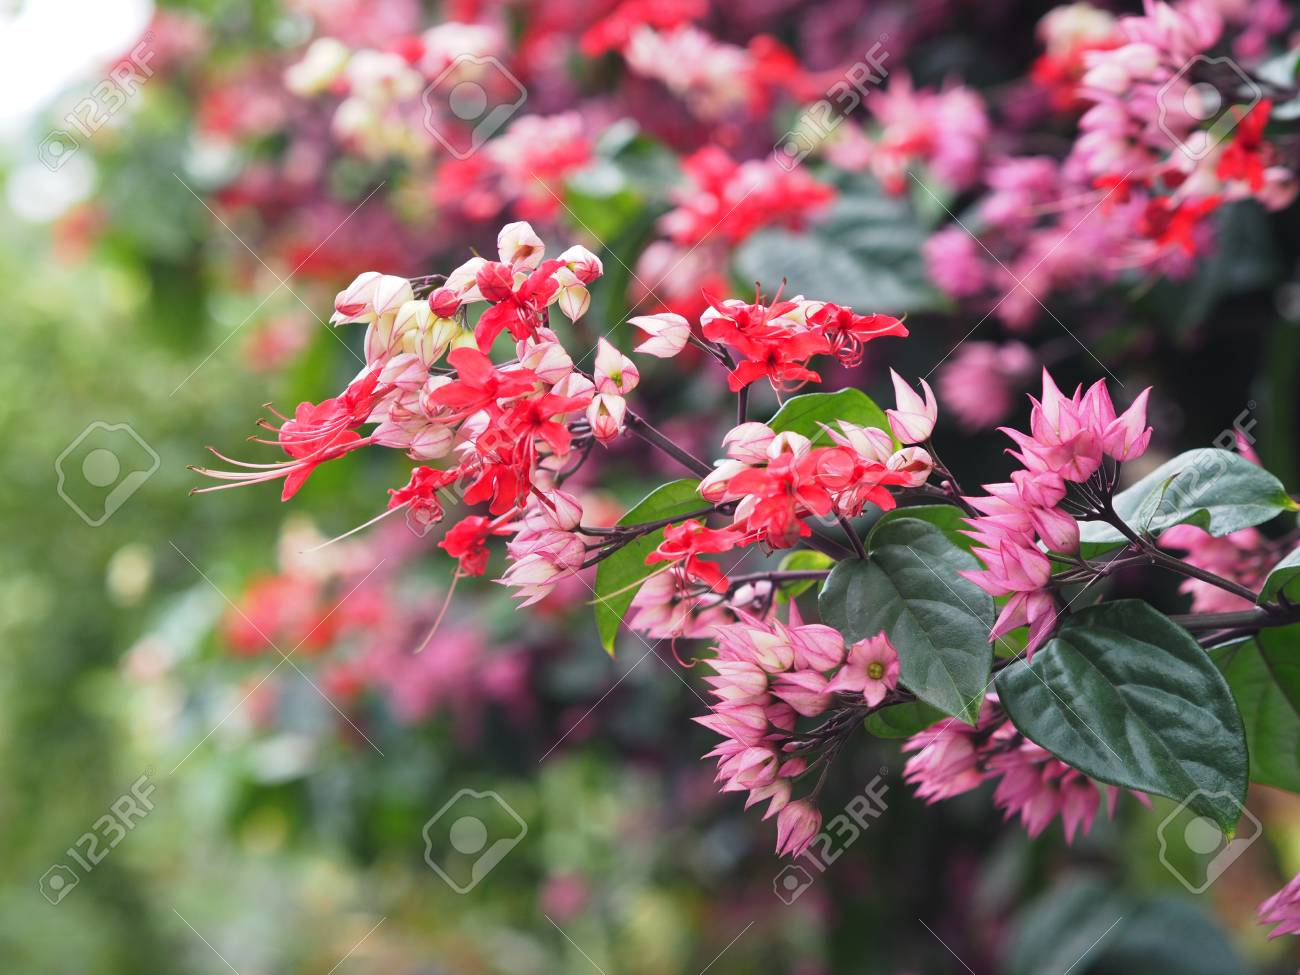 Small red and pink creeper flowers on green background bleeding small red and pink creeper flowers on green background bleeding heart vines pink flowers mightylinksfo